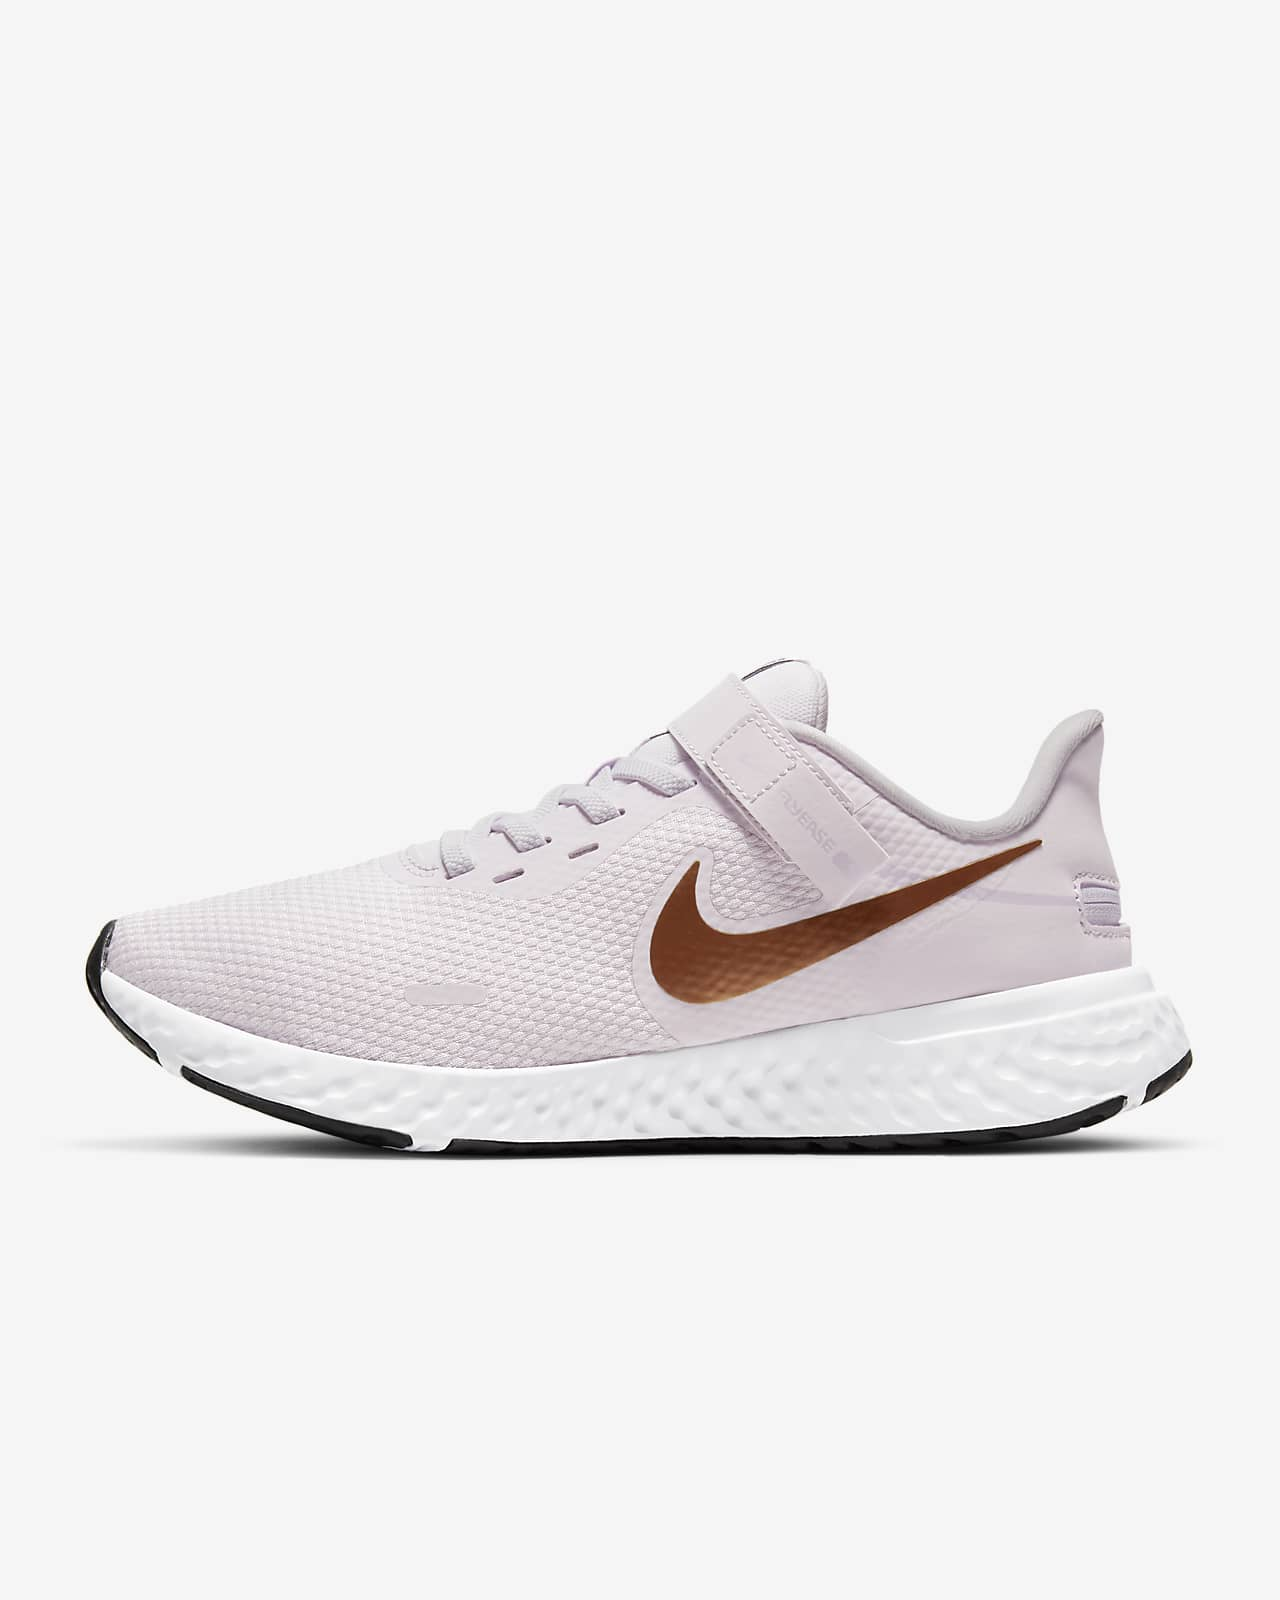 Nike Revolution 5 FlyEase Women's Running Shoe